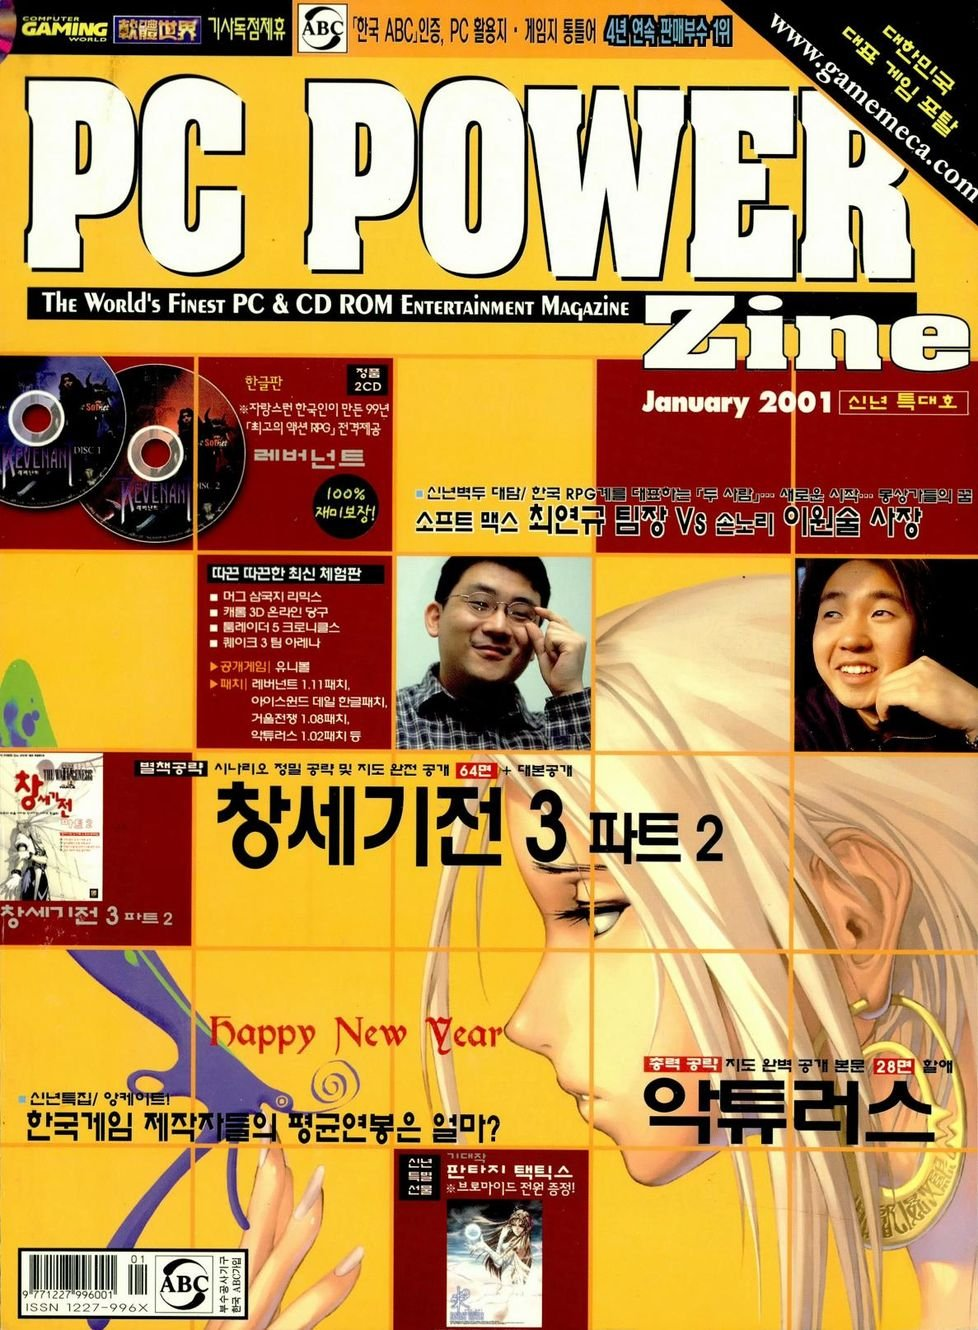 PC Power Zine Issue 66 (January 2001)